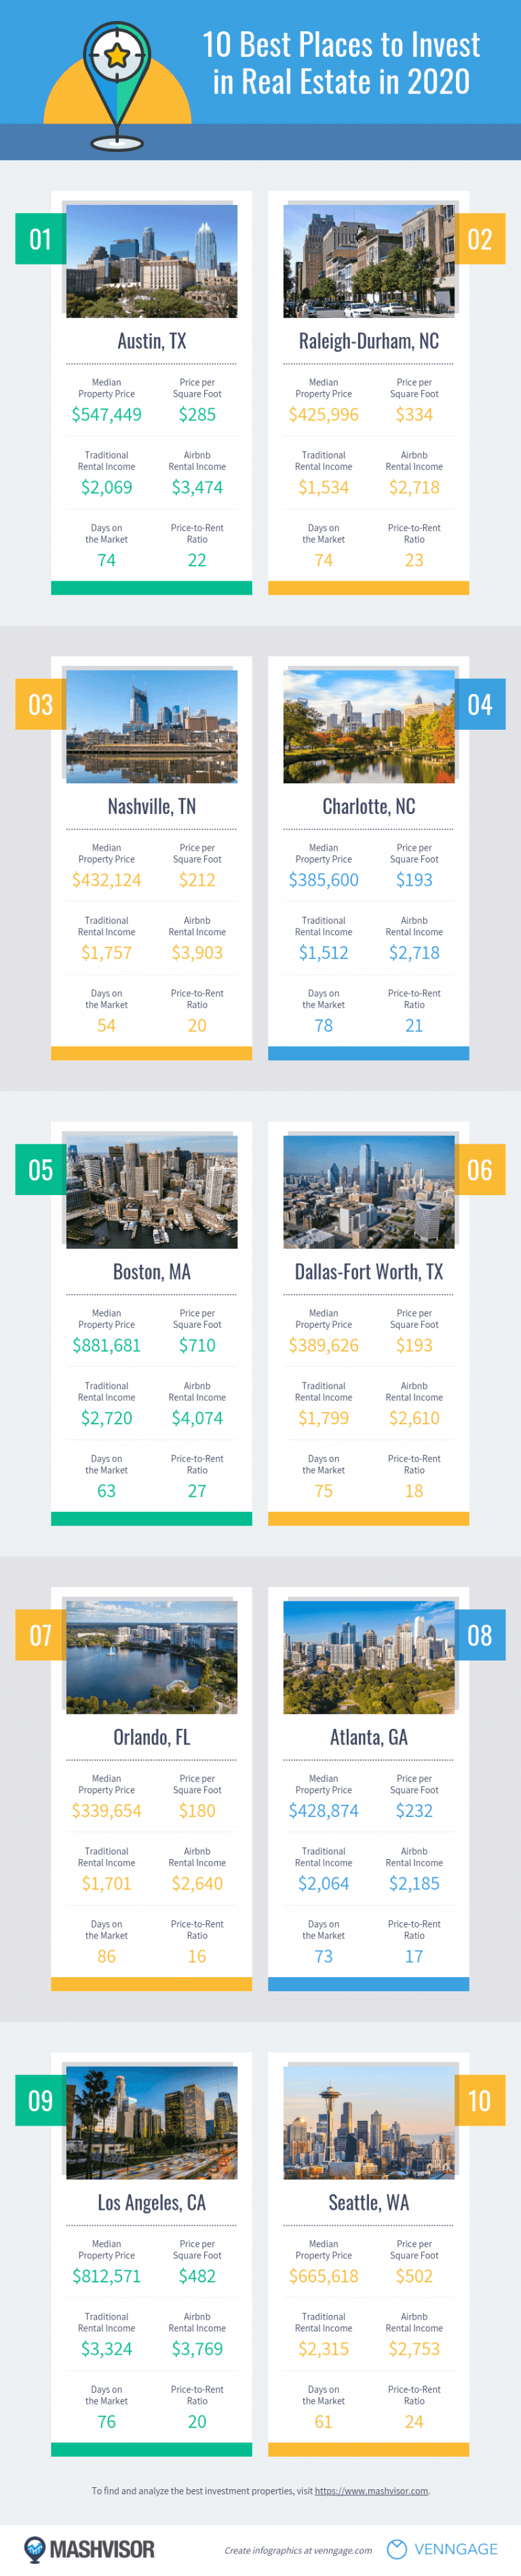 best places to invest in real estate in 2020 infographic